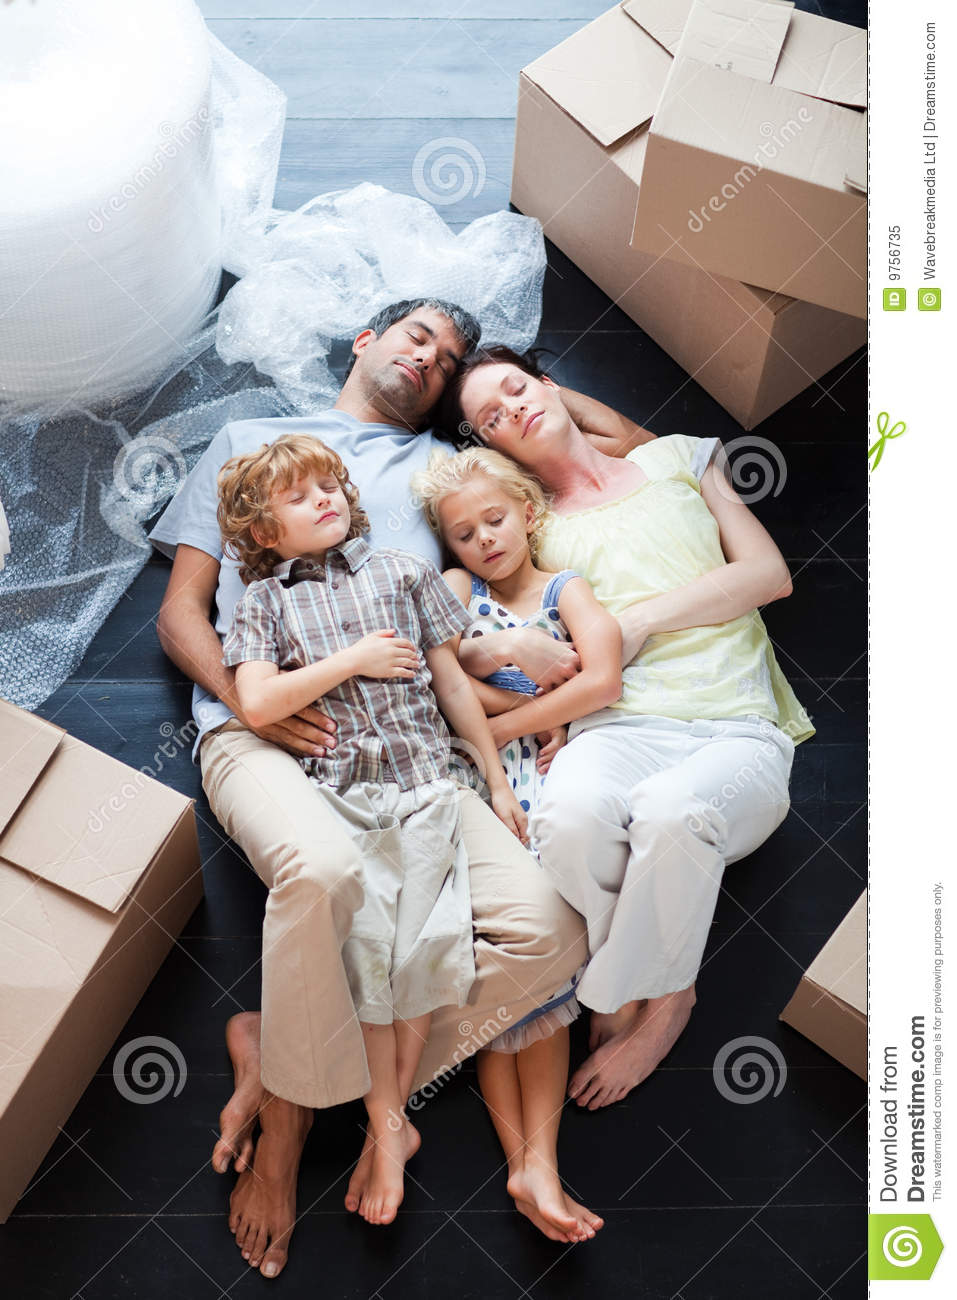 Beautiful Family Sleeping On The Floor Royalty Free Stock